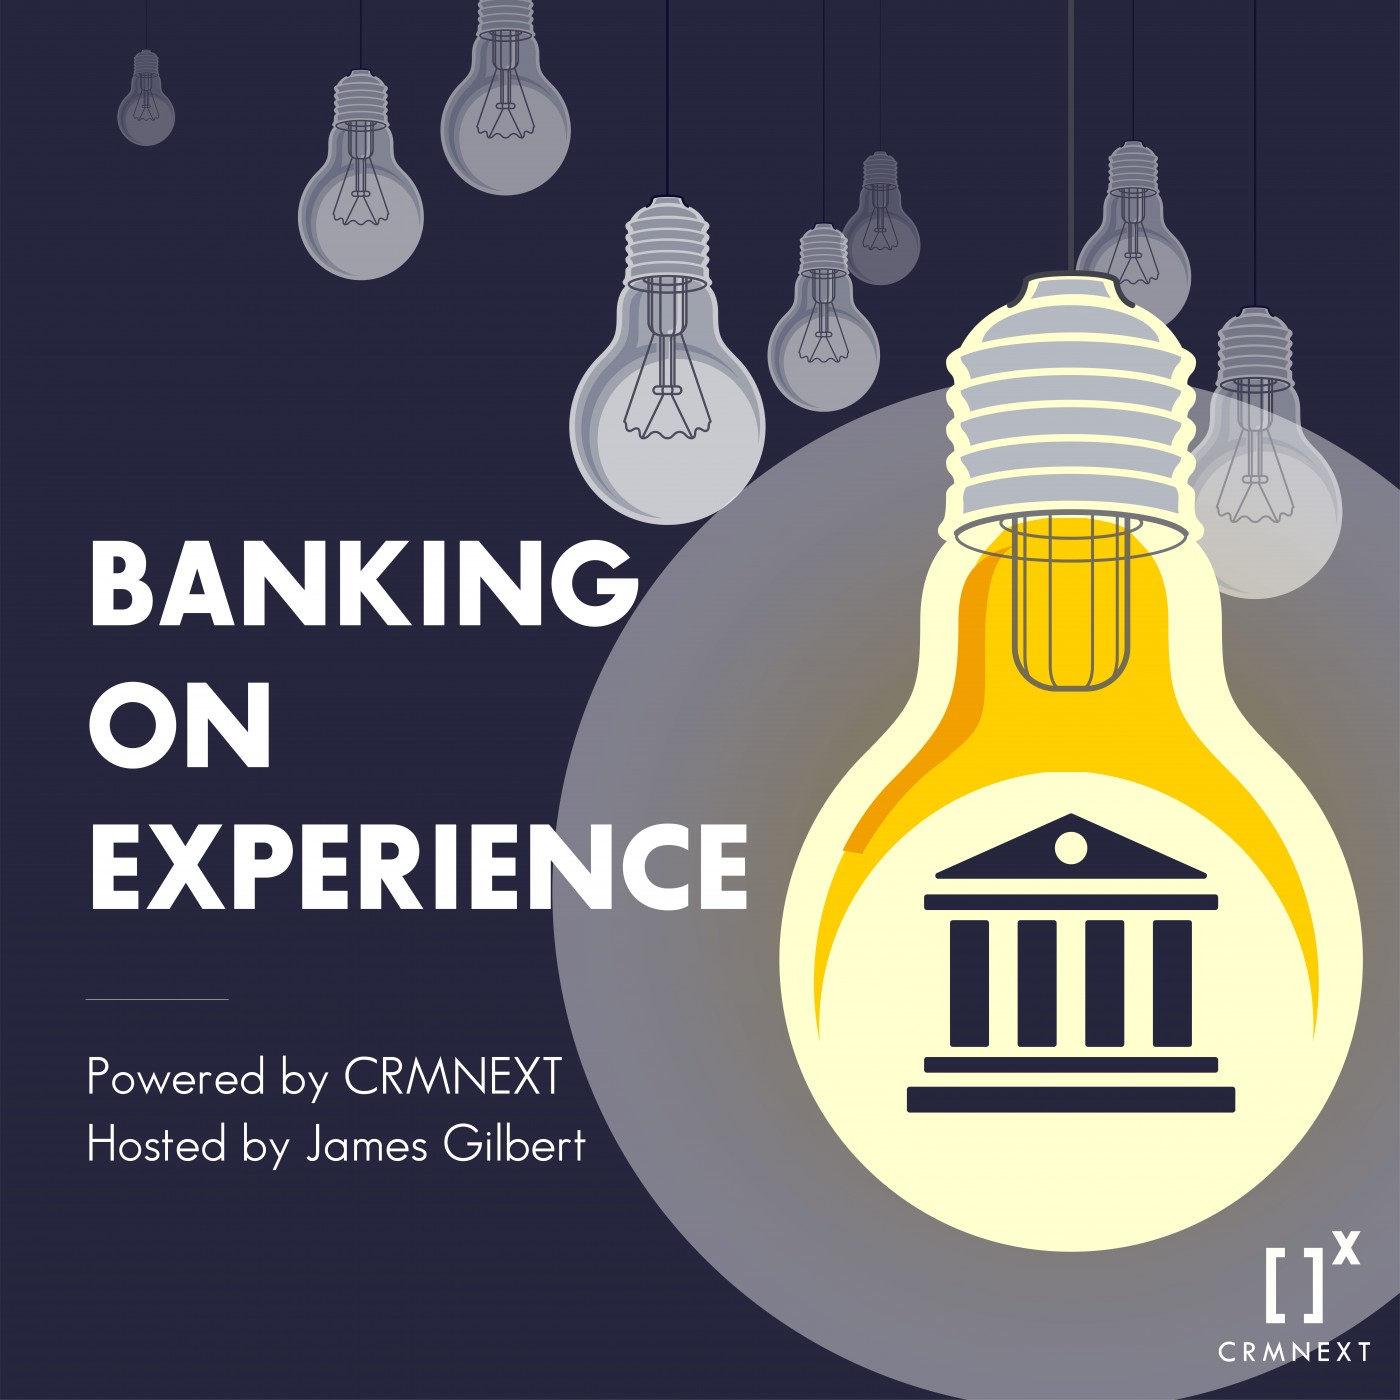 Banking on Experience